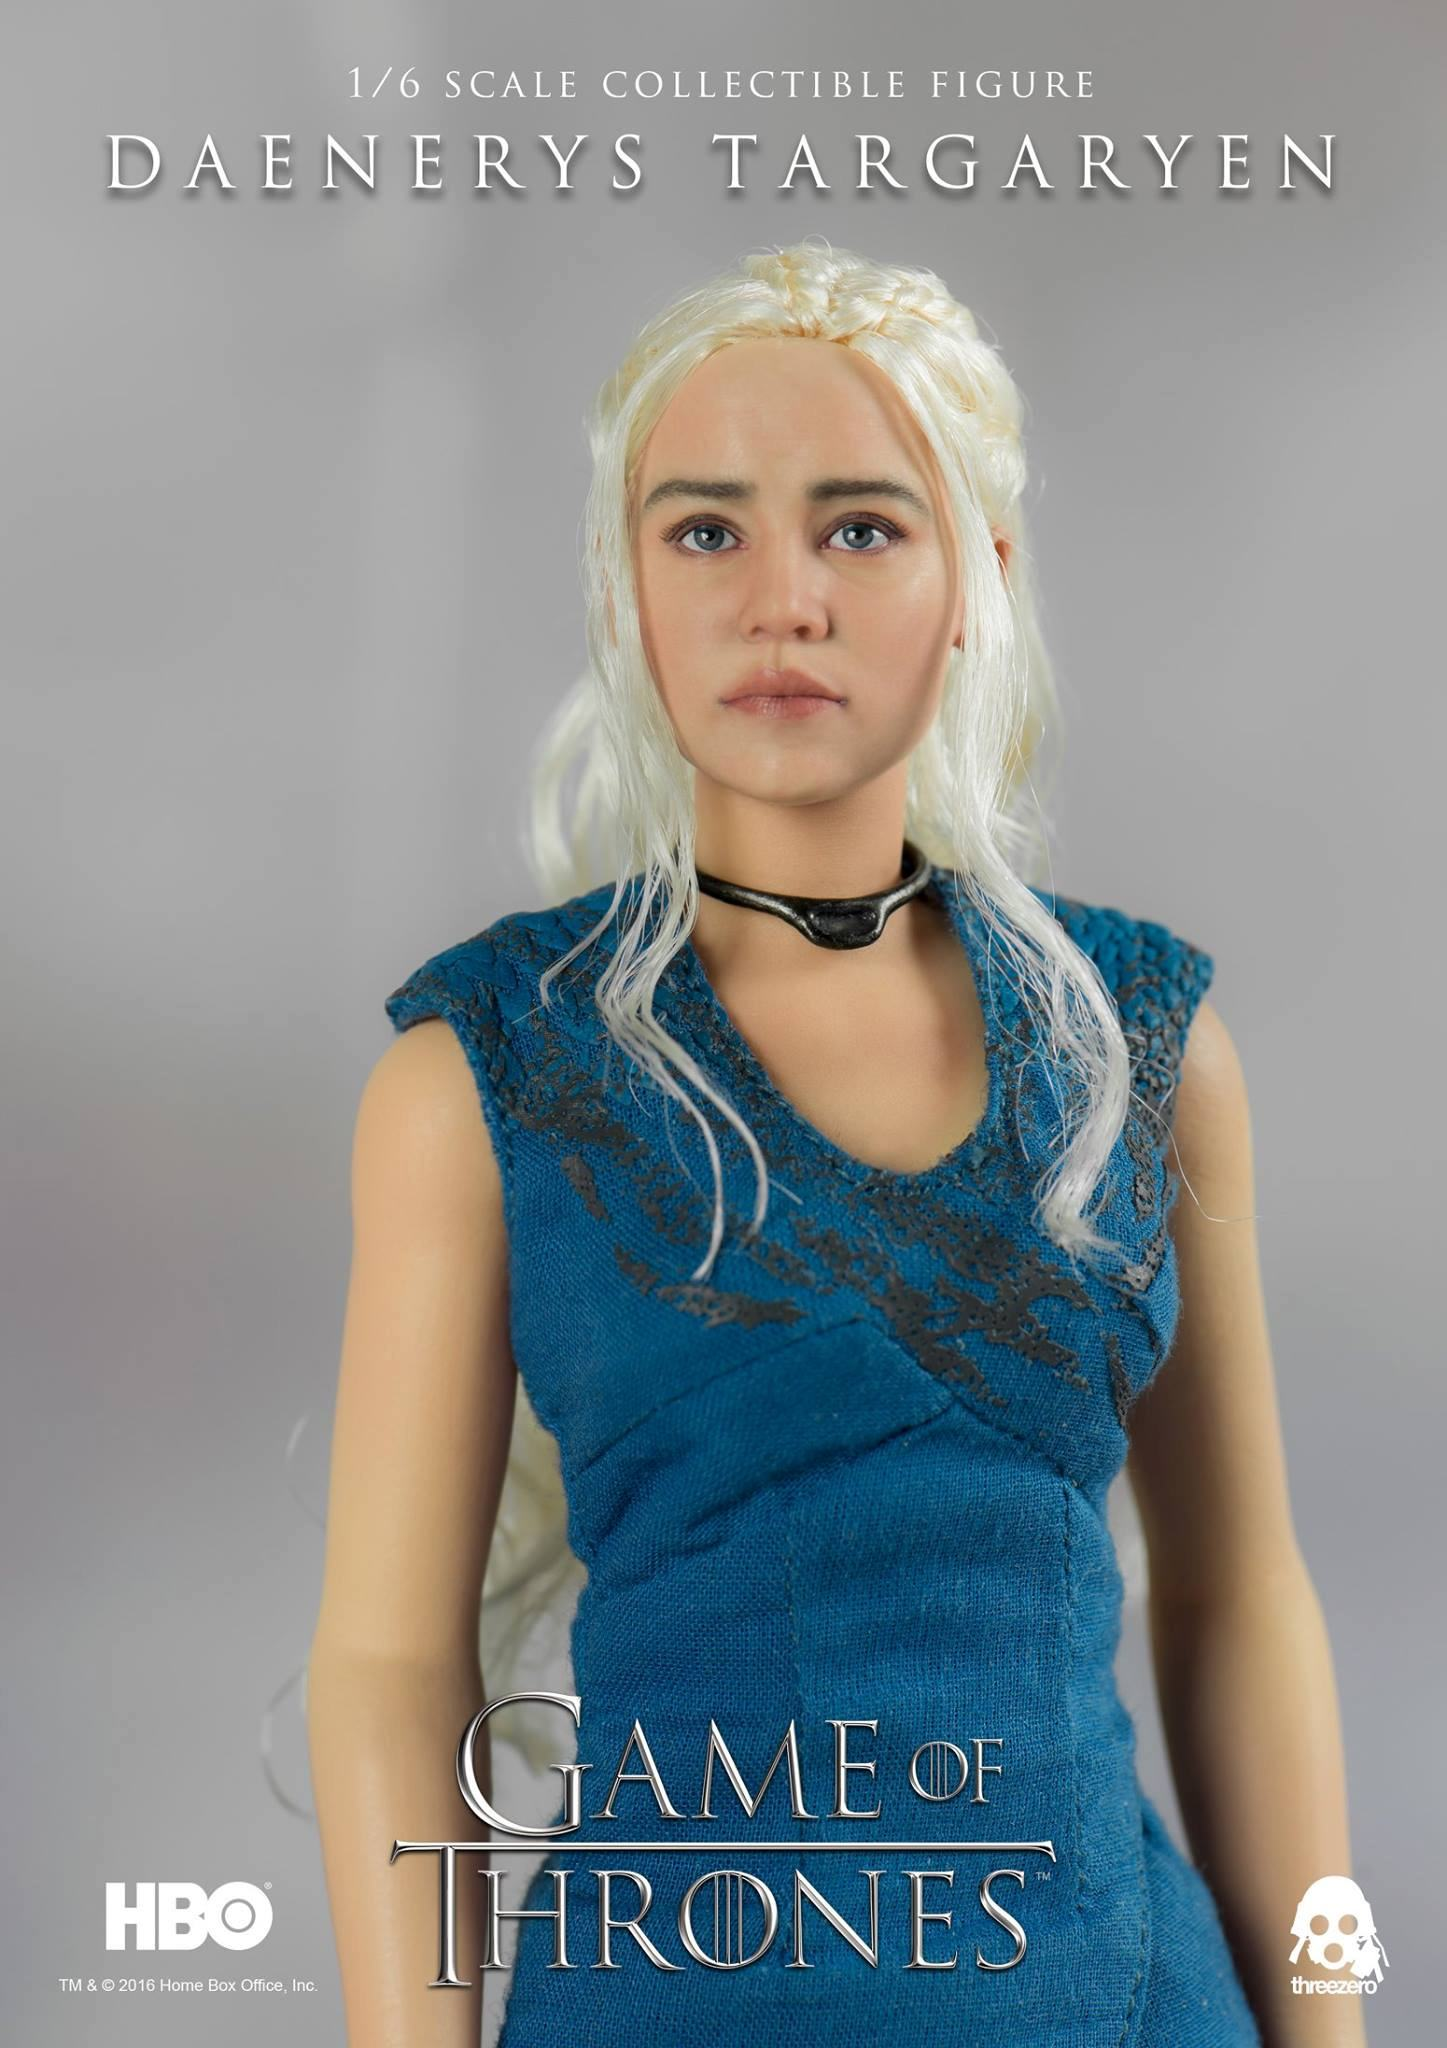 action-figure-perfeita-game-of-thrones-daenerys-targaryen-threezero-10